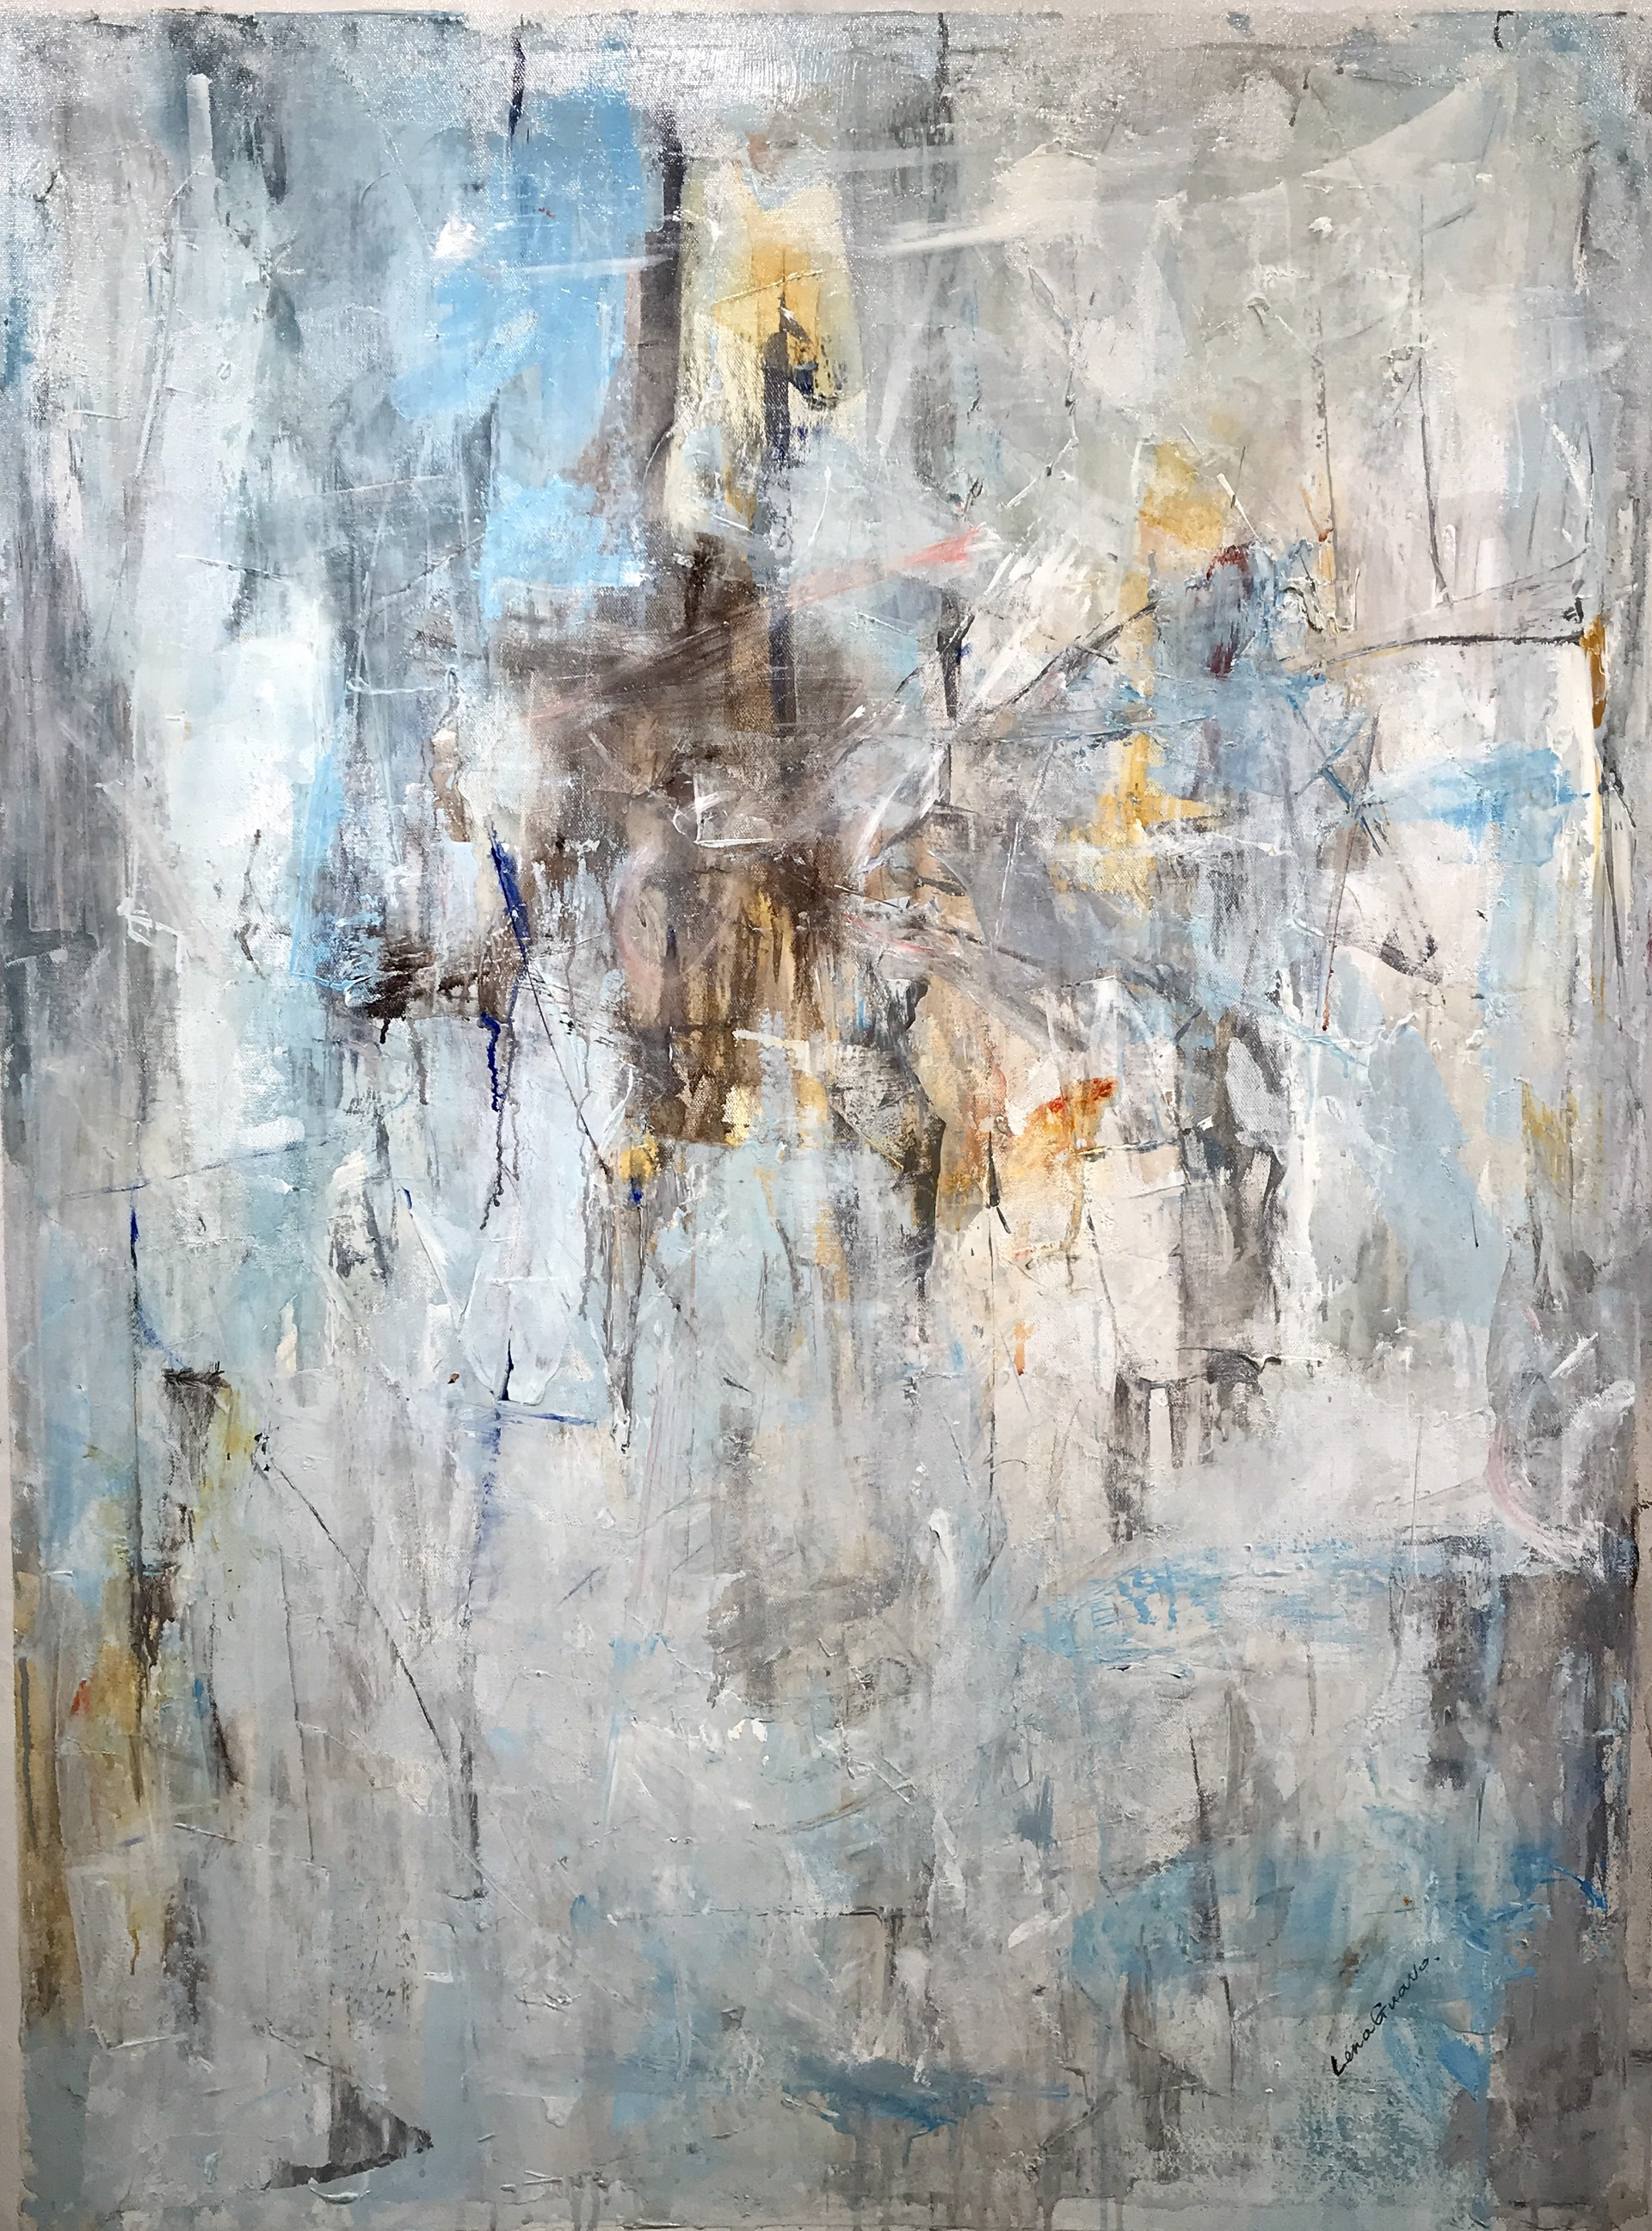 ABSTRACT by LENA GUAVO